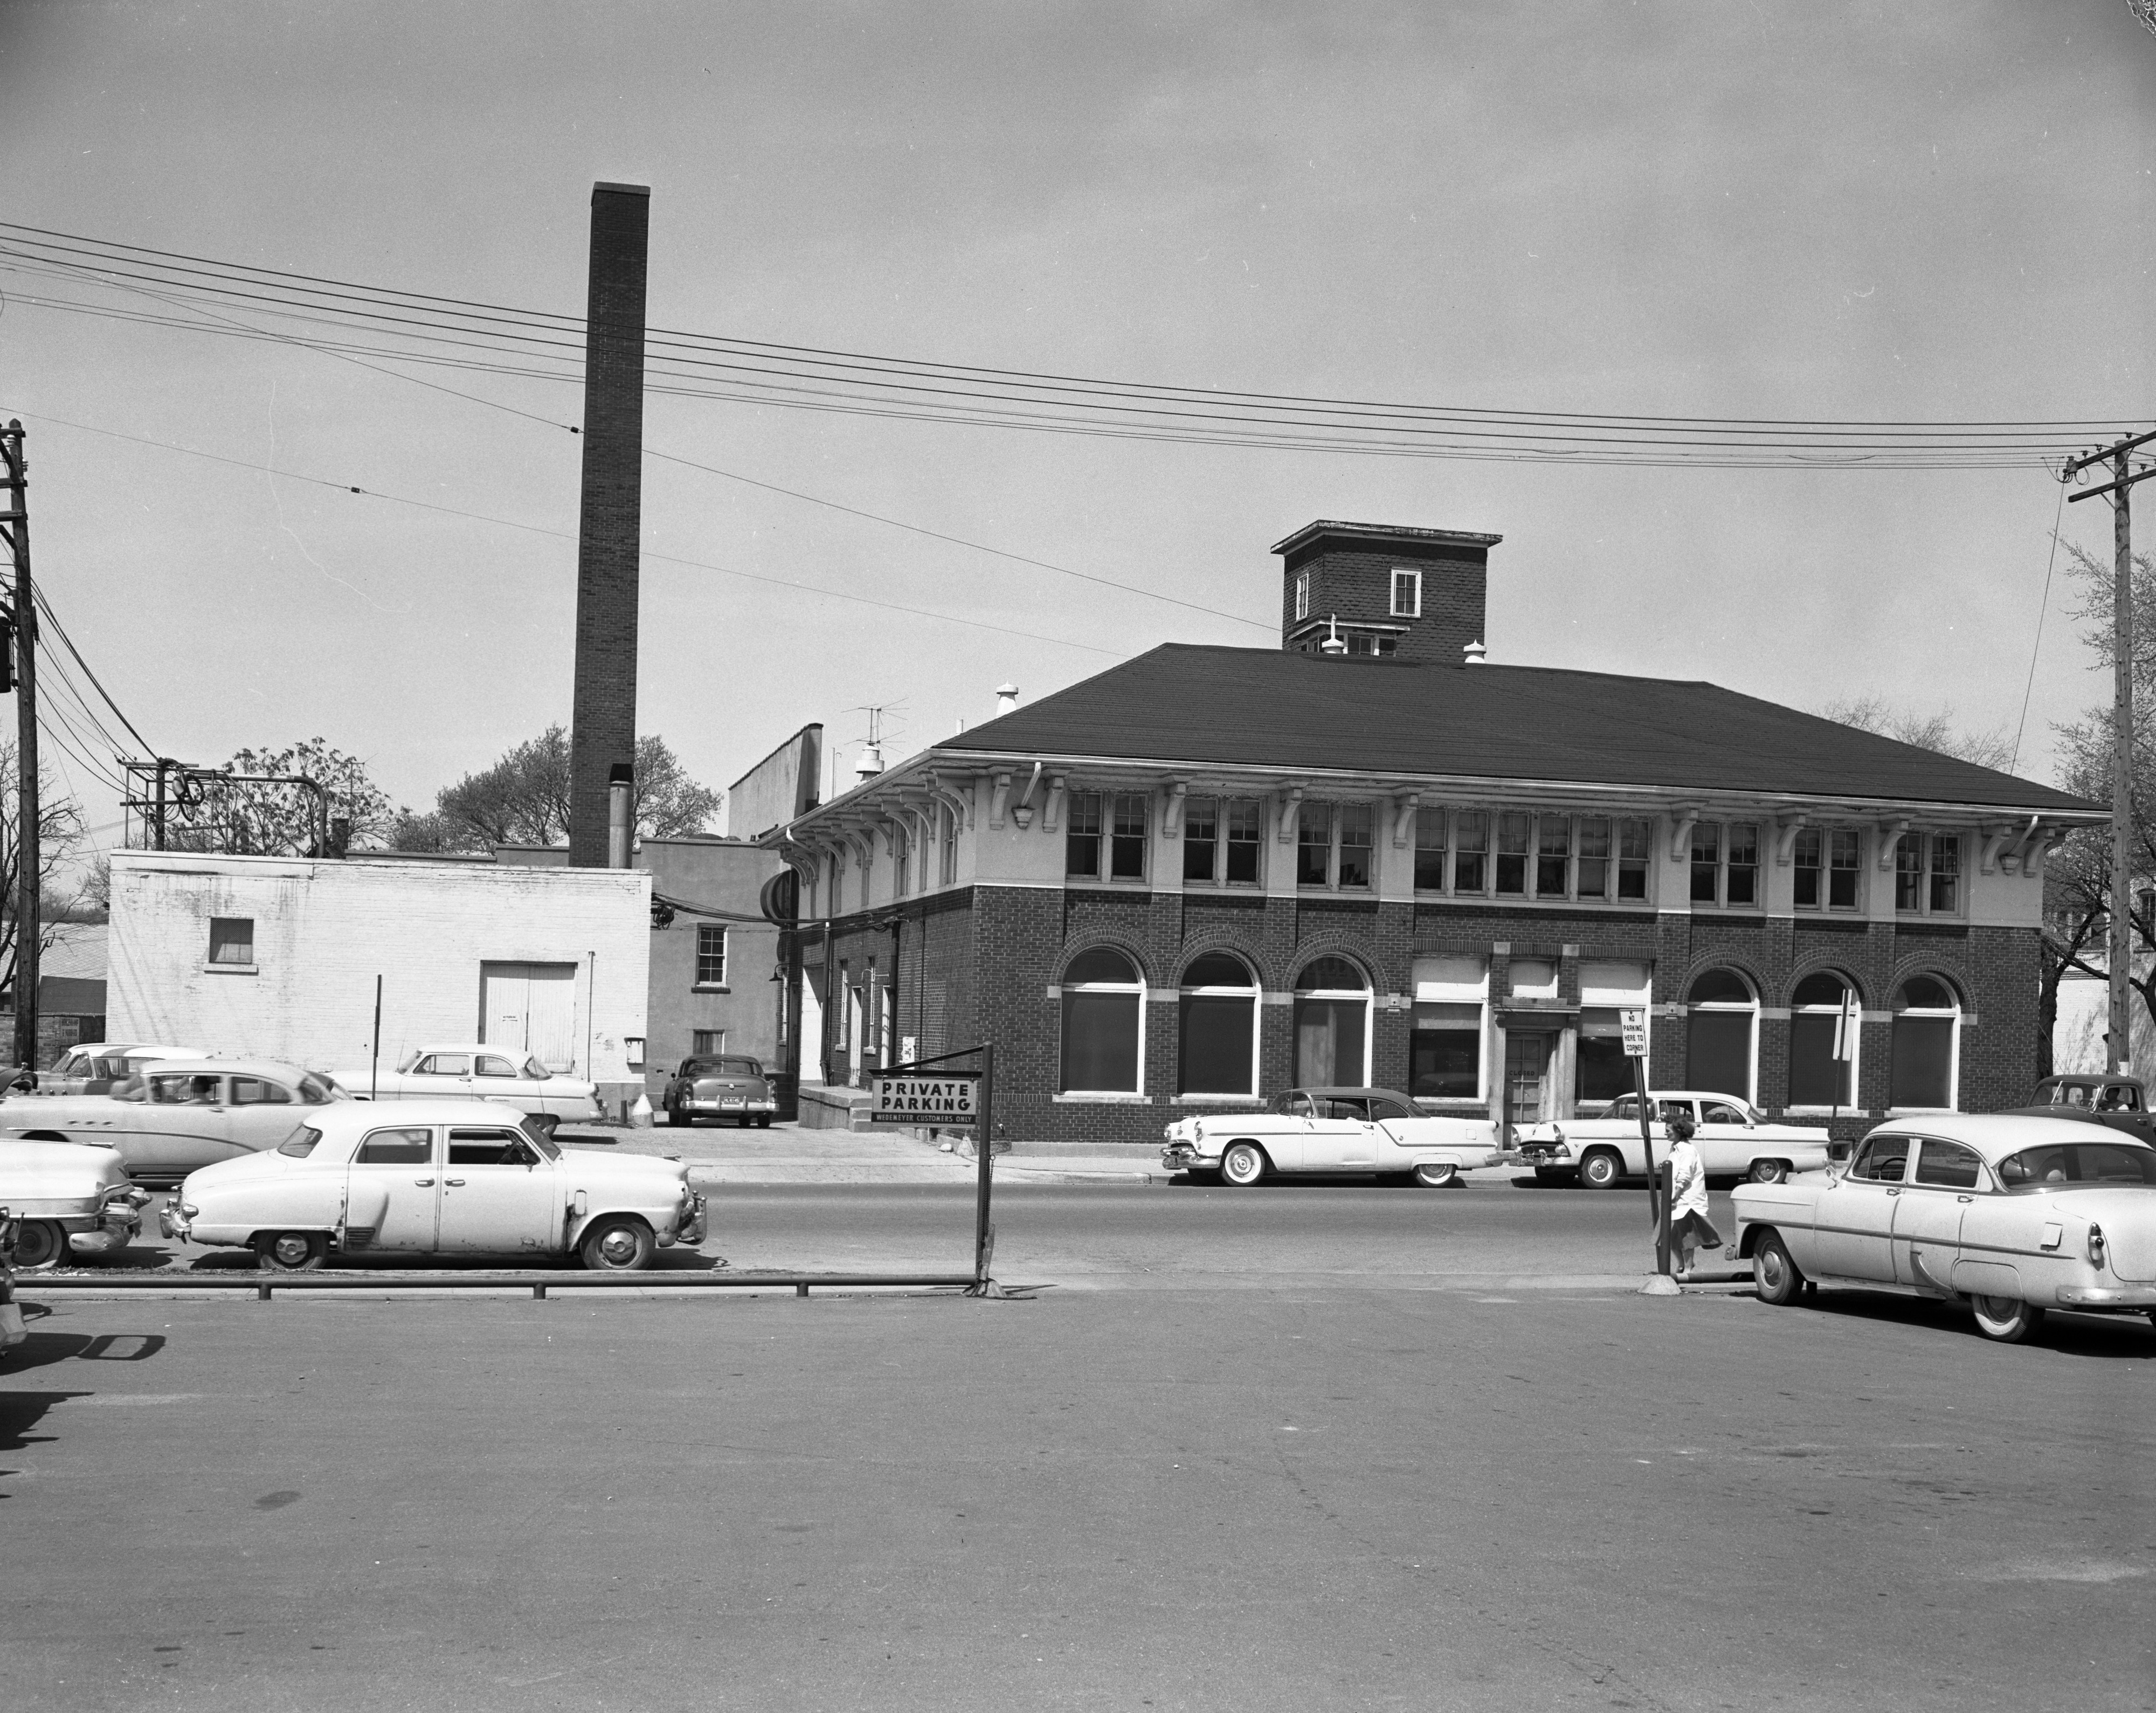 Ann Arbor Dairy, Catherine and N. 4th Ave., May 1957 image